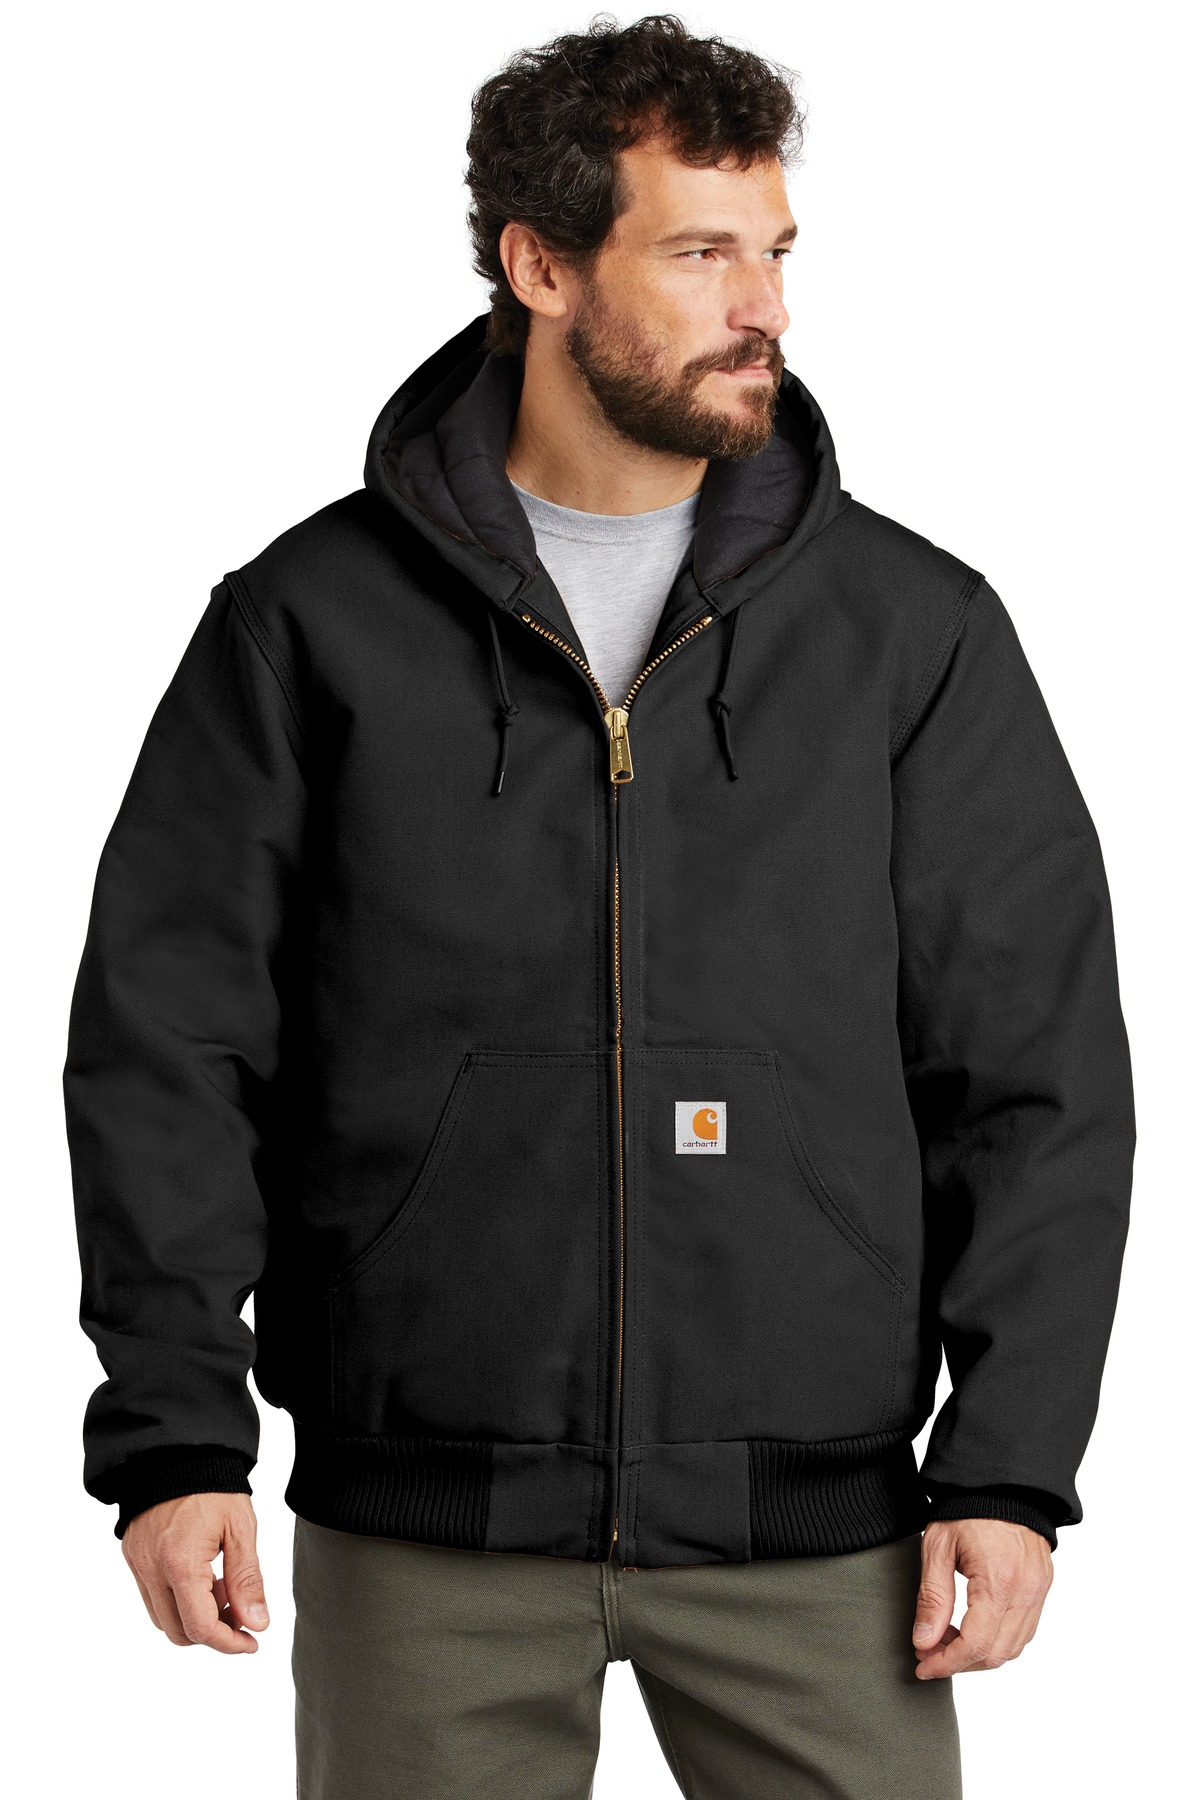 Carhartt  ®  Quilted-Flannel-Lined Duck Active Jac. CTSJ140 - Black